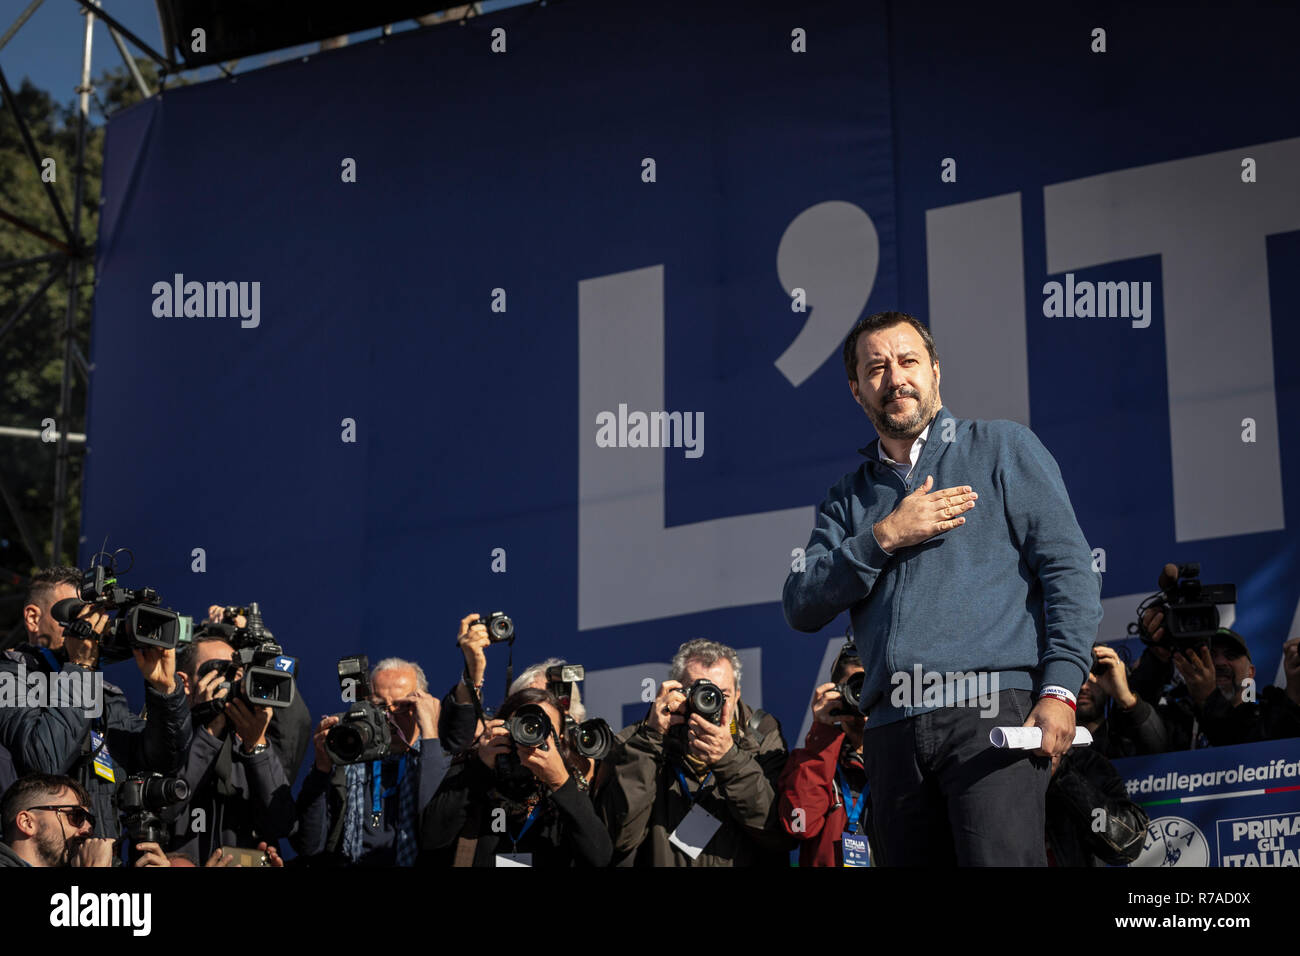 Rome, Italy. 08th Dec, 2018. Demonstration of the League in Piazza del Popolo in Rome, full of supporters. Before his speech the vice premier Matteo Salvini has enforced a minute of silence for the victims of the tragedy in the Marche nightclub. Many supporters from southern Italy, especially from Calabria and Sardinia. Rome, Italy, 8 December 2018 Credit: Independent Photo Agency/Alamy Live News - Stock Image